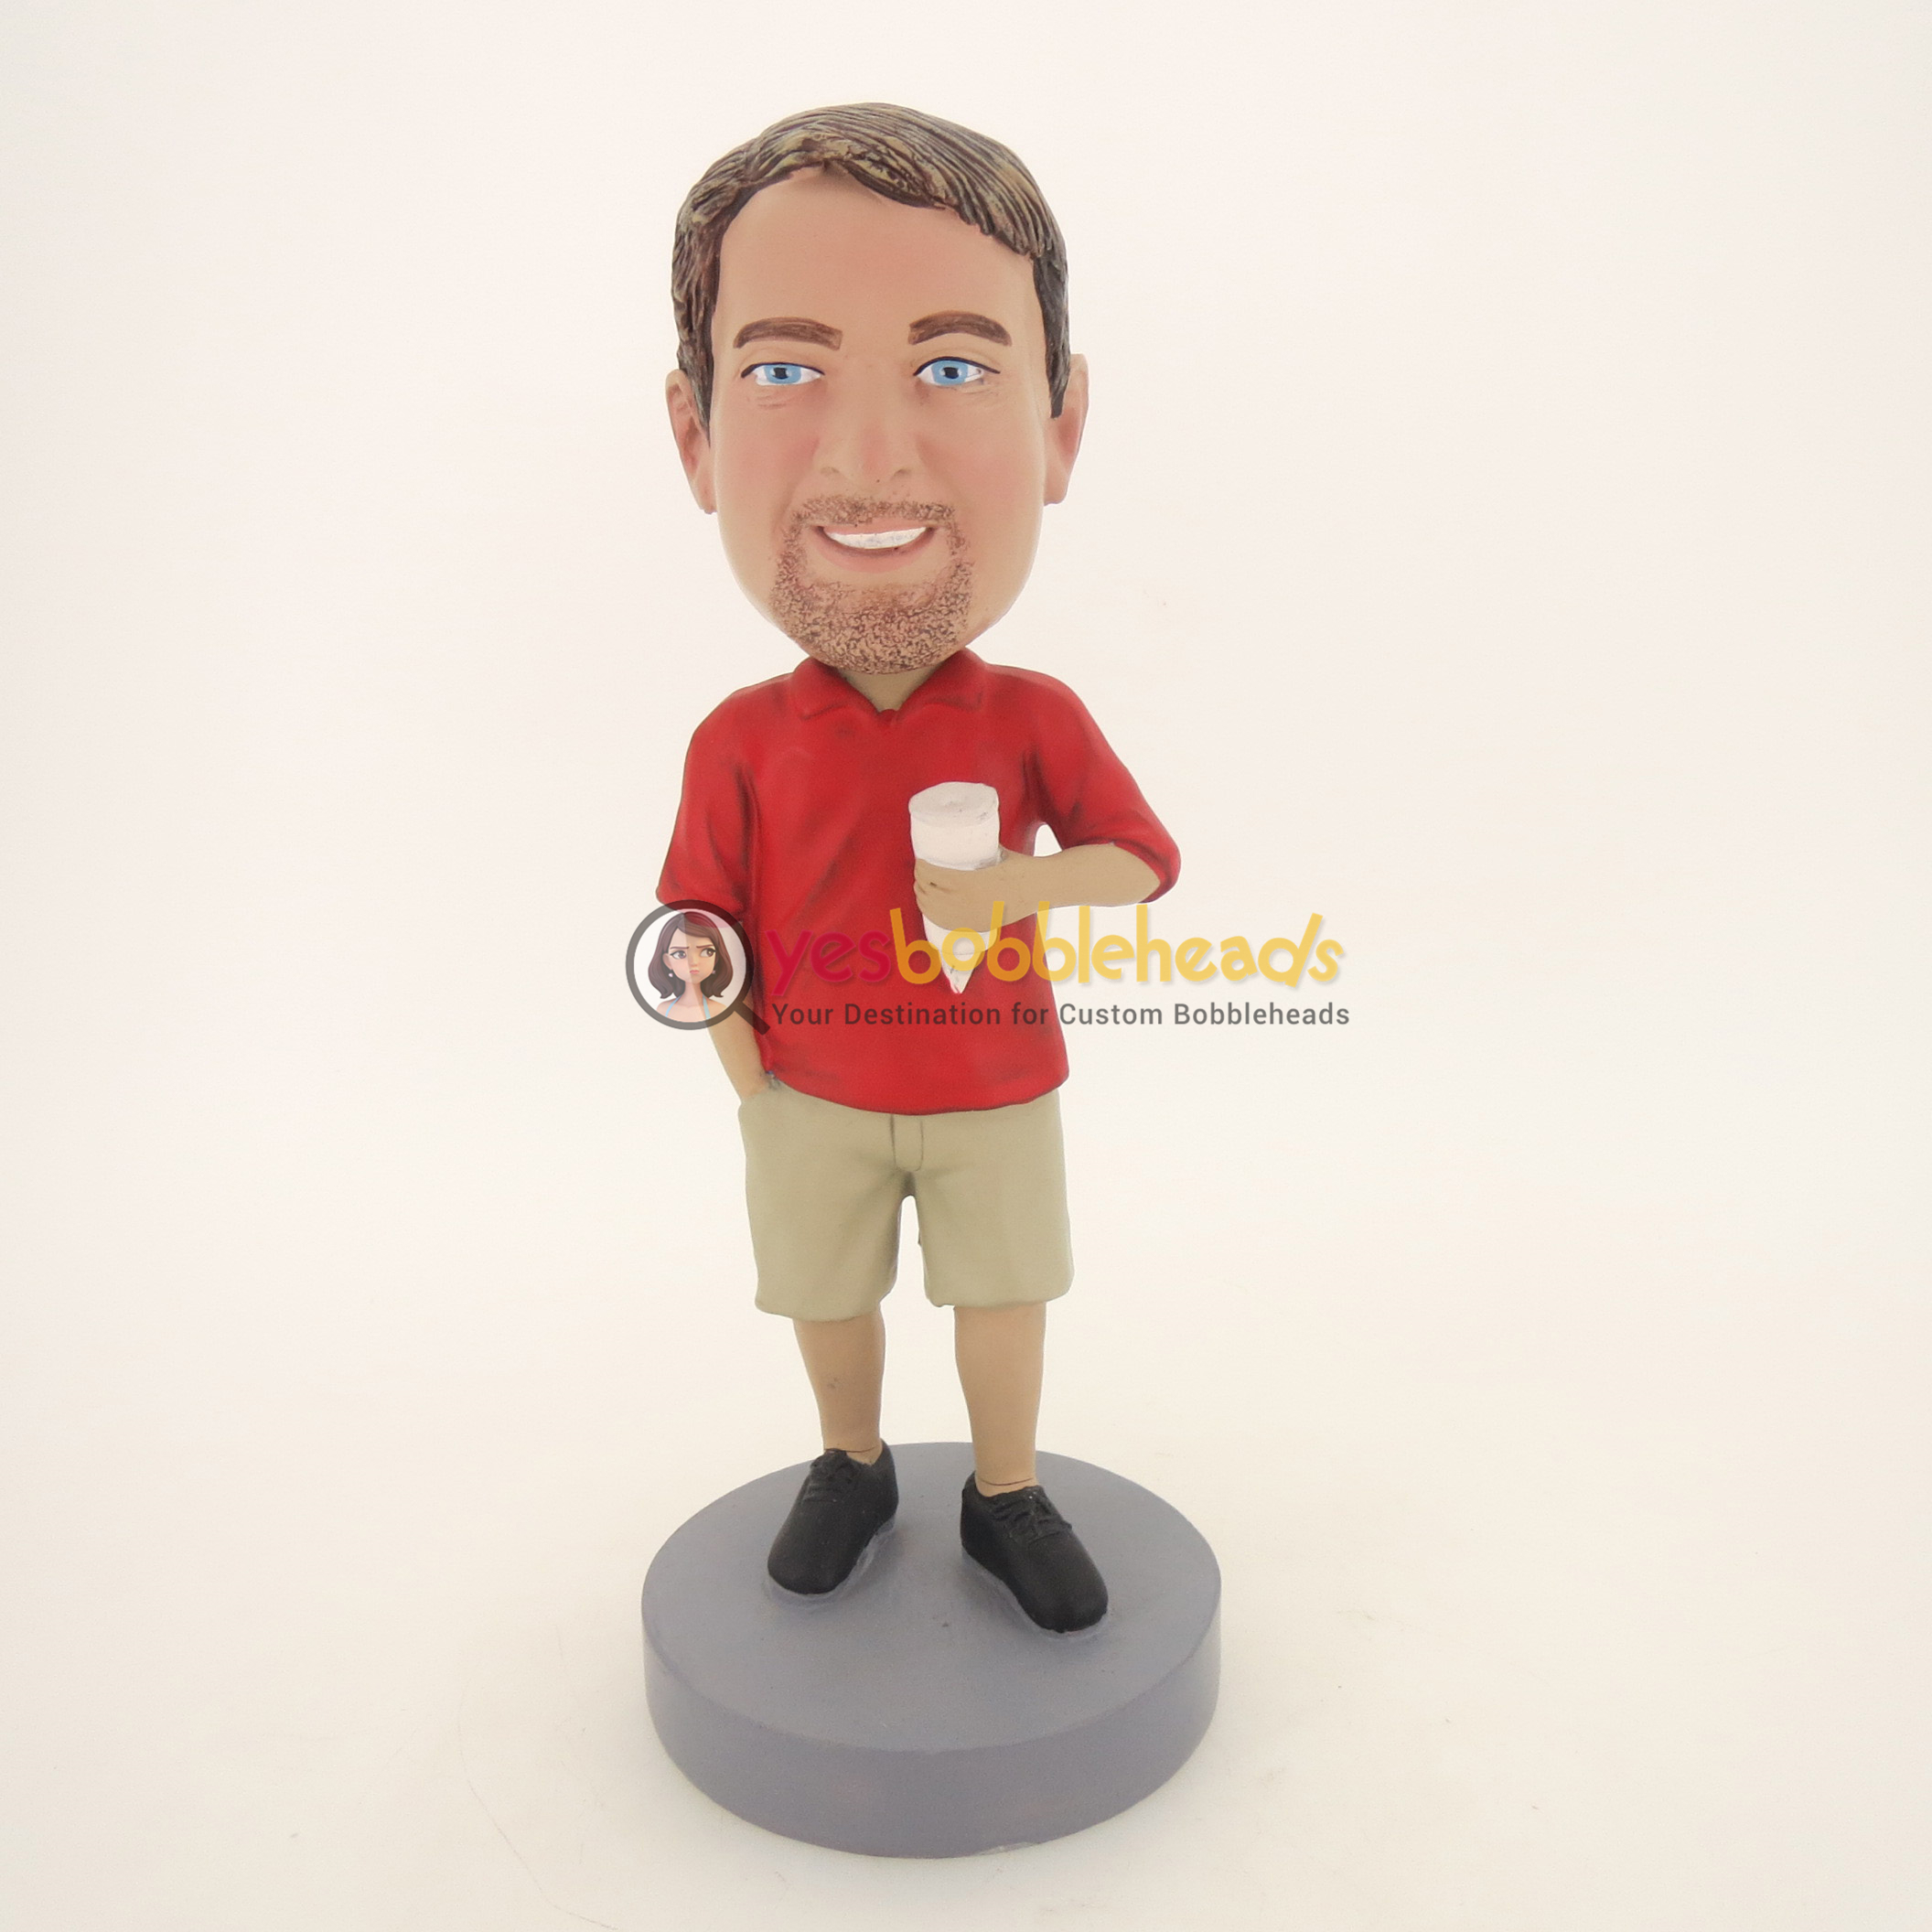 Picture of Custom Bobblehead Doll: Custom Bobblehead Doll: Casual Man Having Ice Cream